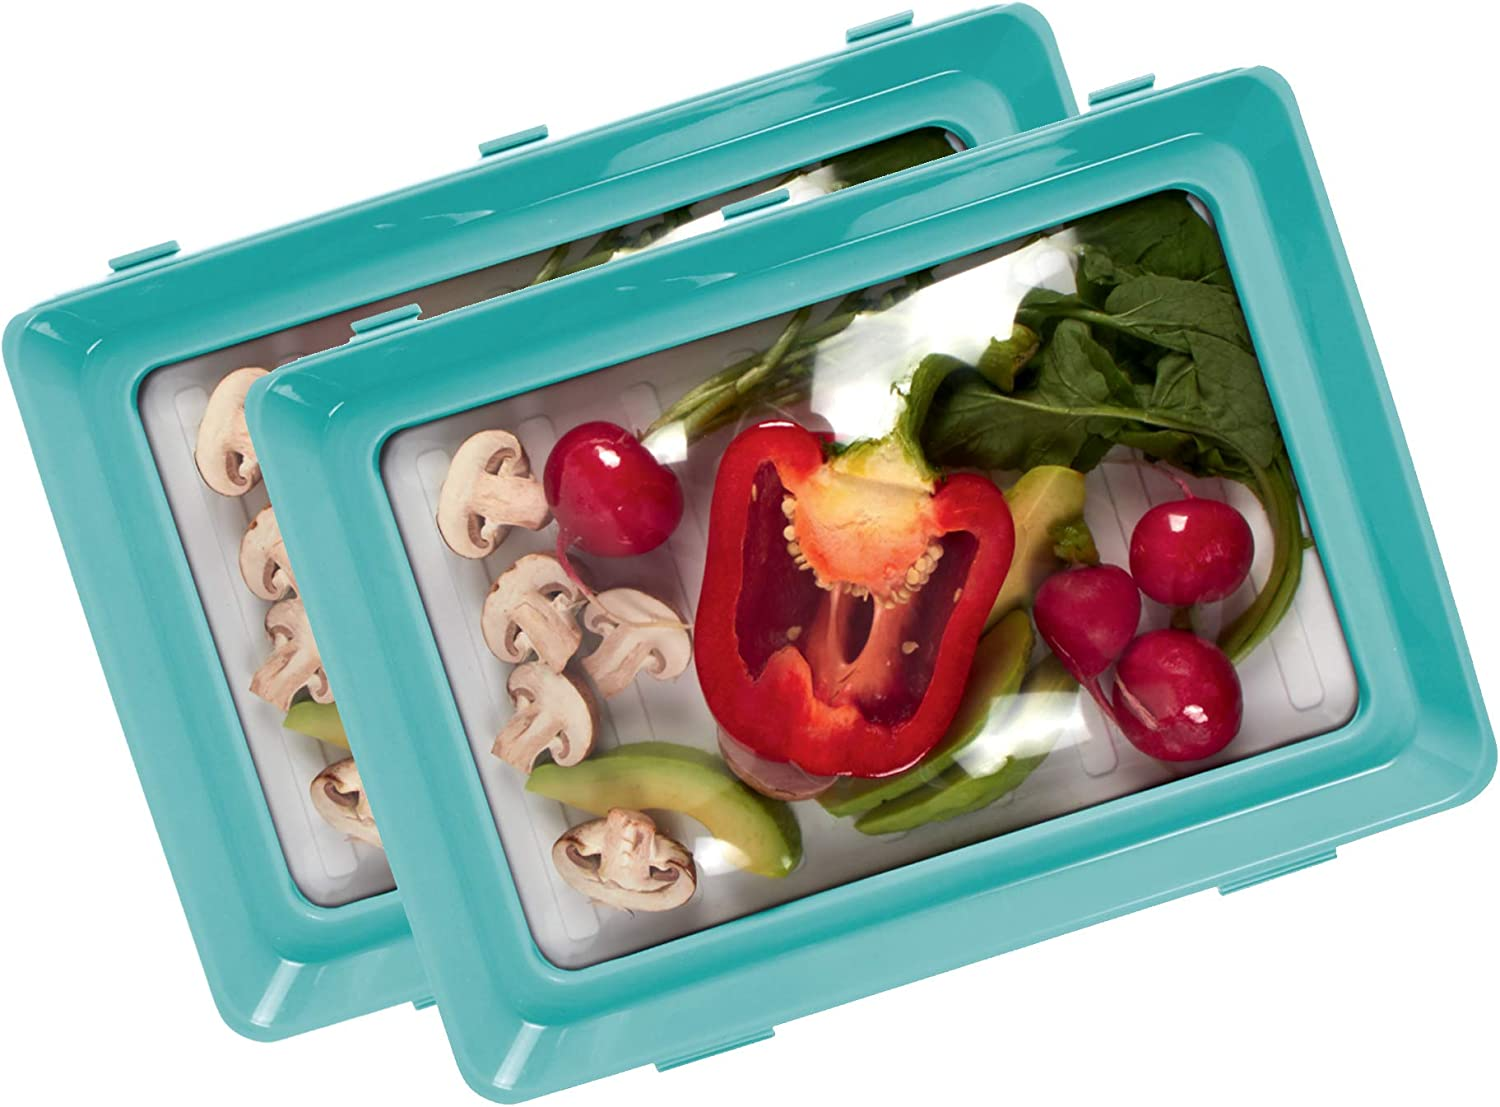 Skinny Stacks - Stackable Food Storage Trays, Saves Space and Keeps Food Fresh, Reusable - Dishwasher & Freezer Safe - Air Sealed, Durable, Food Preserver, Meal-Prep, Food Storage Containers